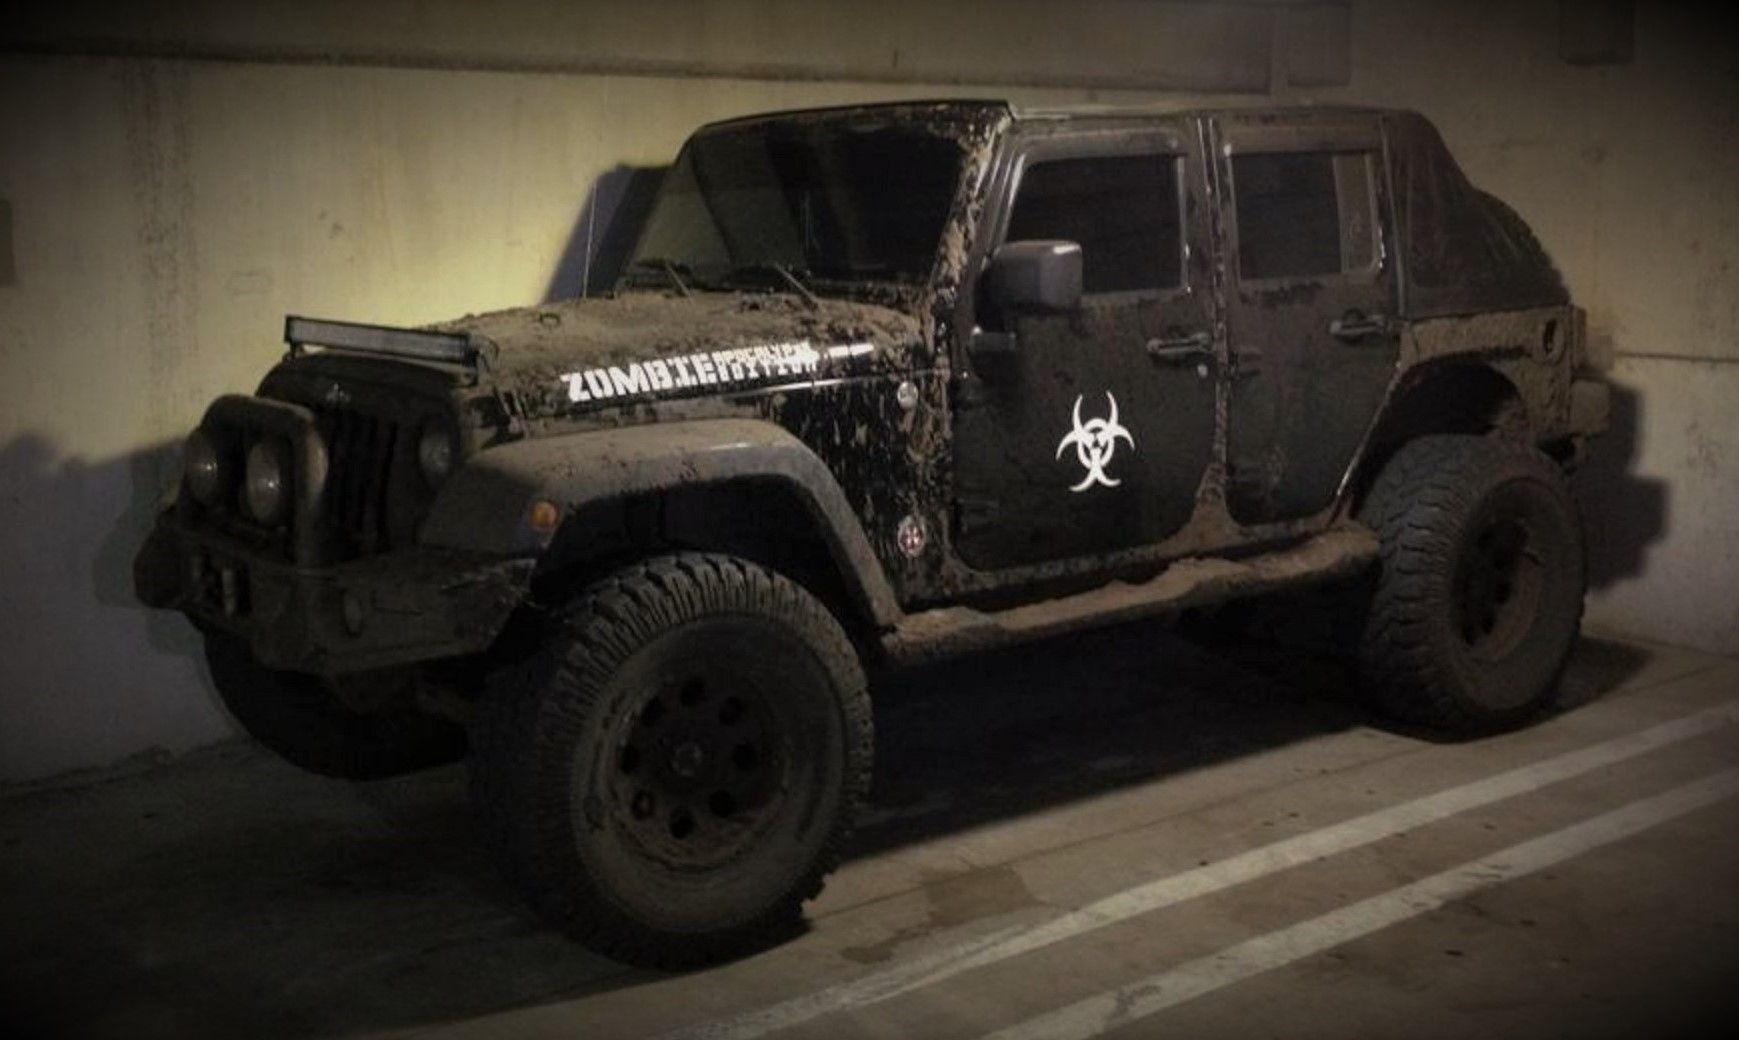 Zombie Apocalypse Edition Assault Jeep Based On The 2007 Wrangler